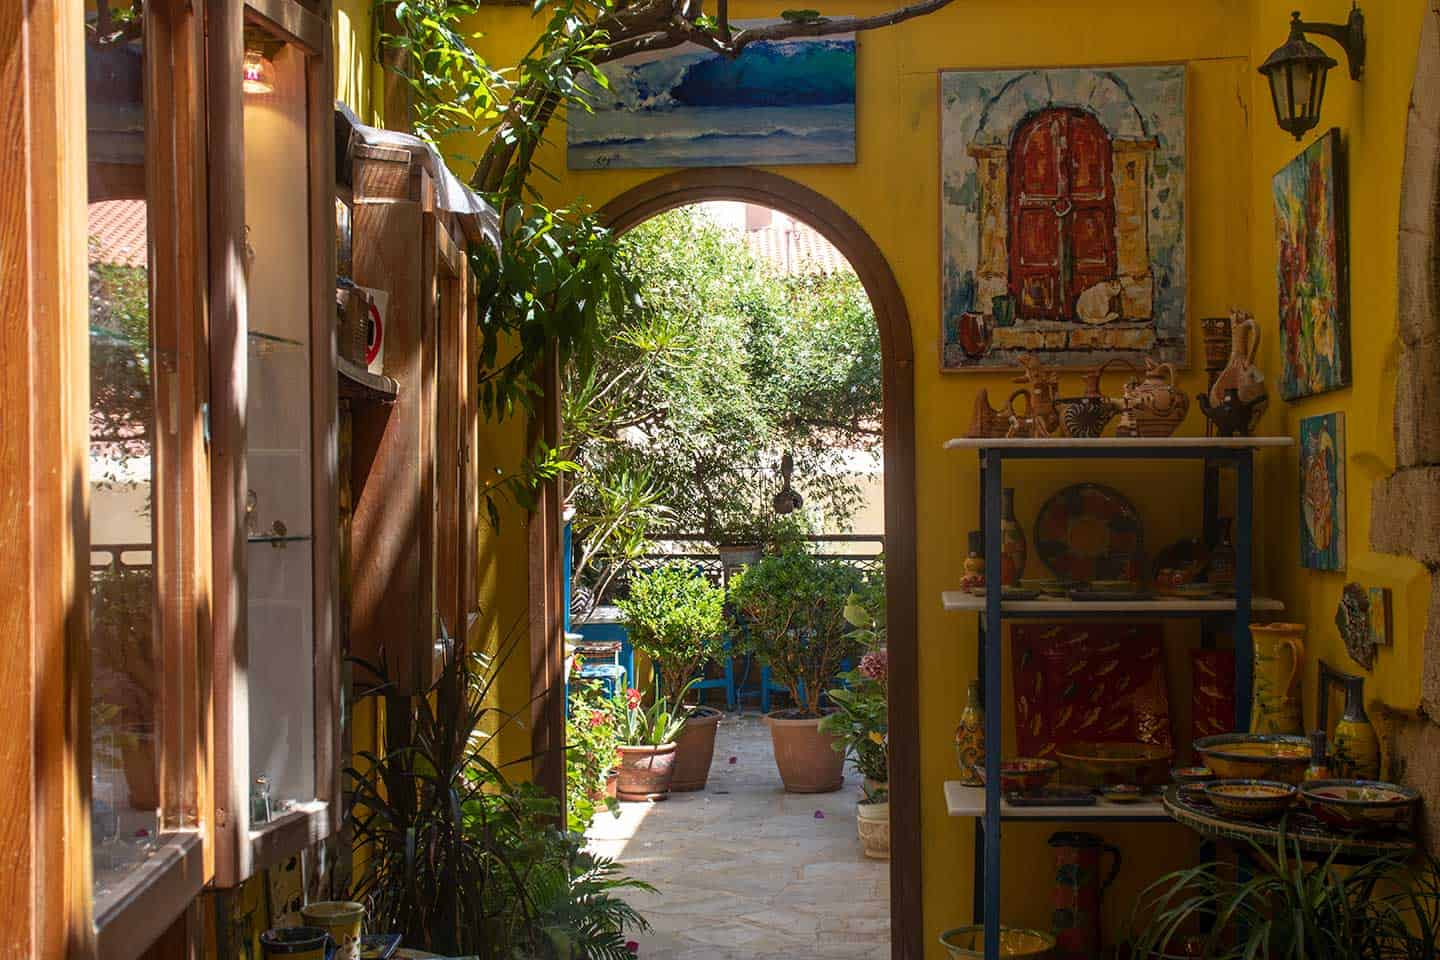 Image of an art gallery and craft shop in Chania Crete Greece